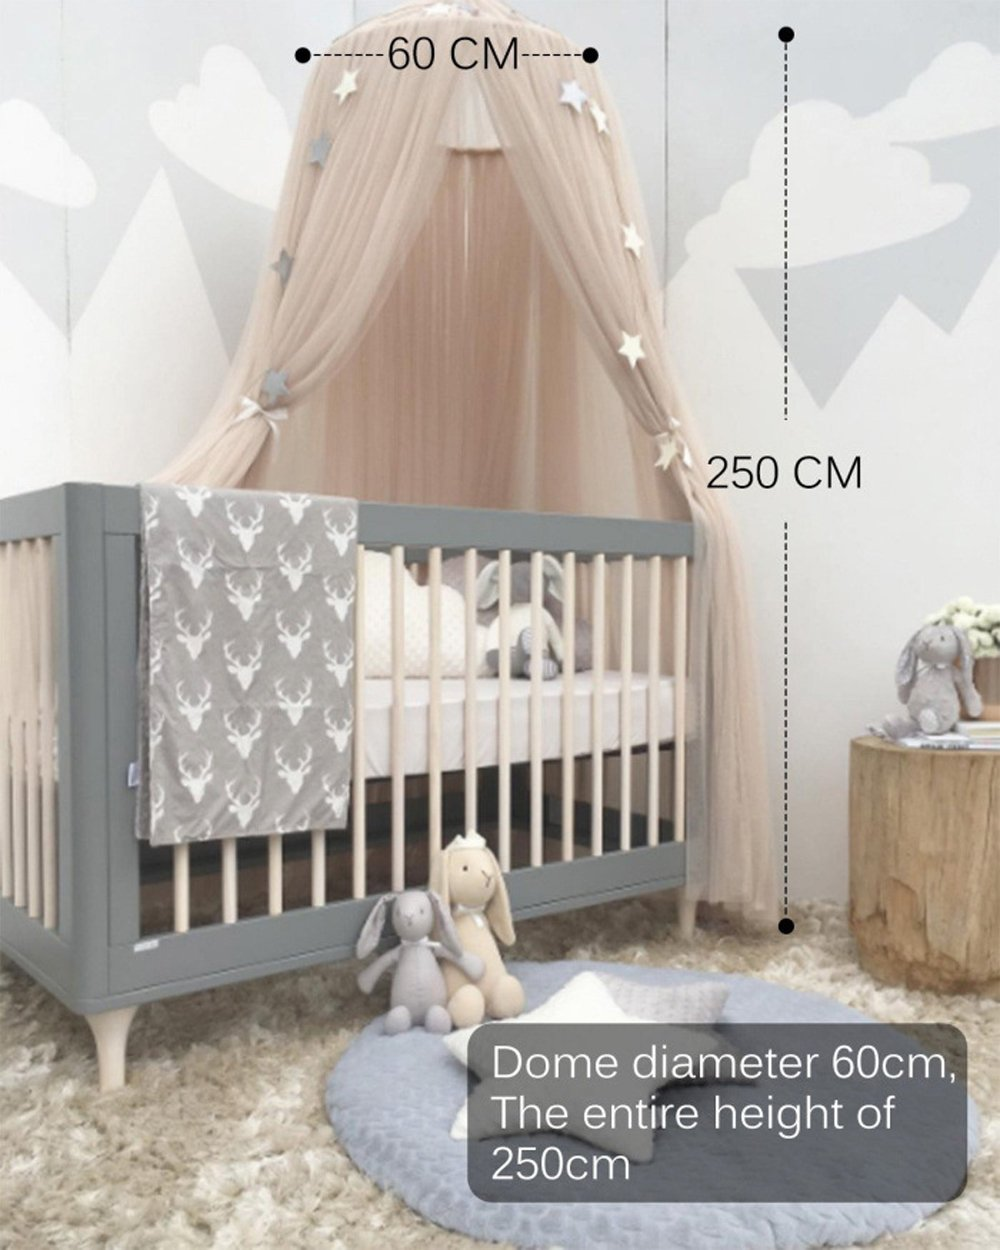 ESUPPORT Dome Princess Bed Canopy Round Lace Mosquito Net Play Tent Hanging House Decoration Lace Netting Curtains Indoor Game House for Baby Kids by ESUPPORT (Image #4)